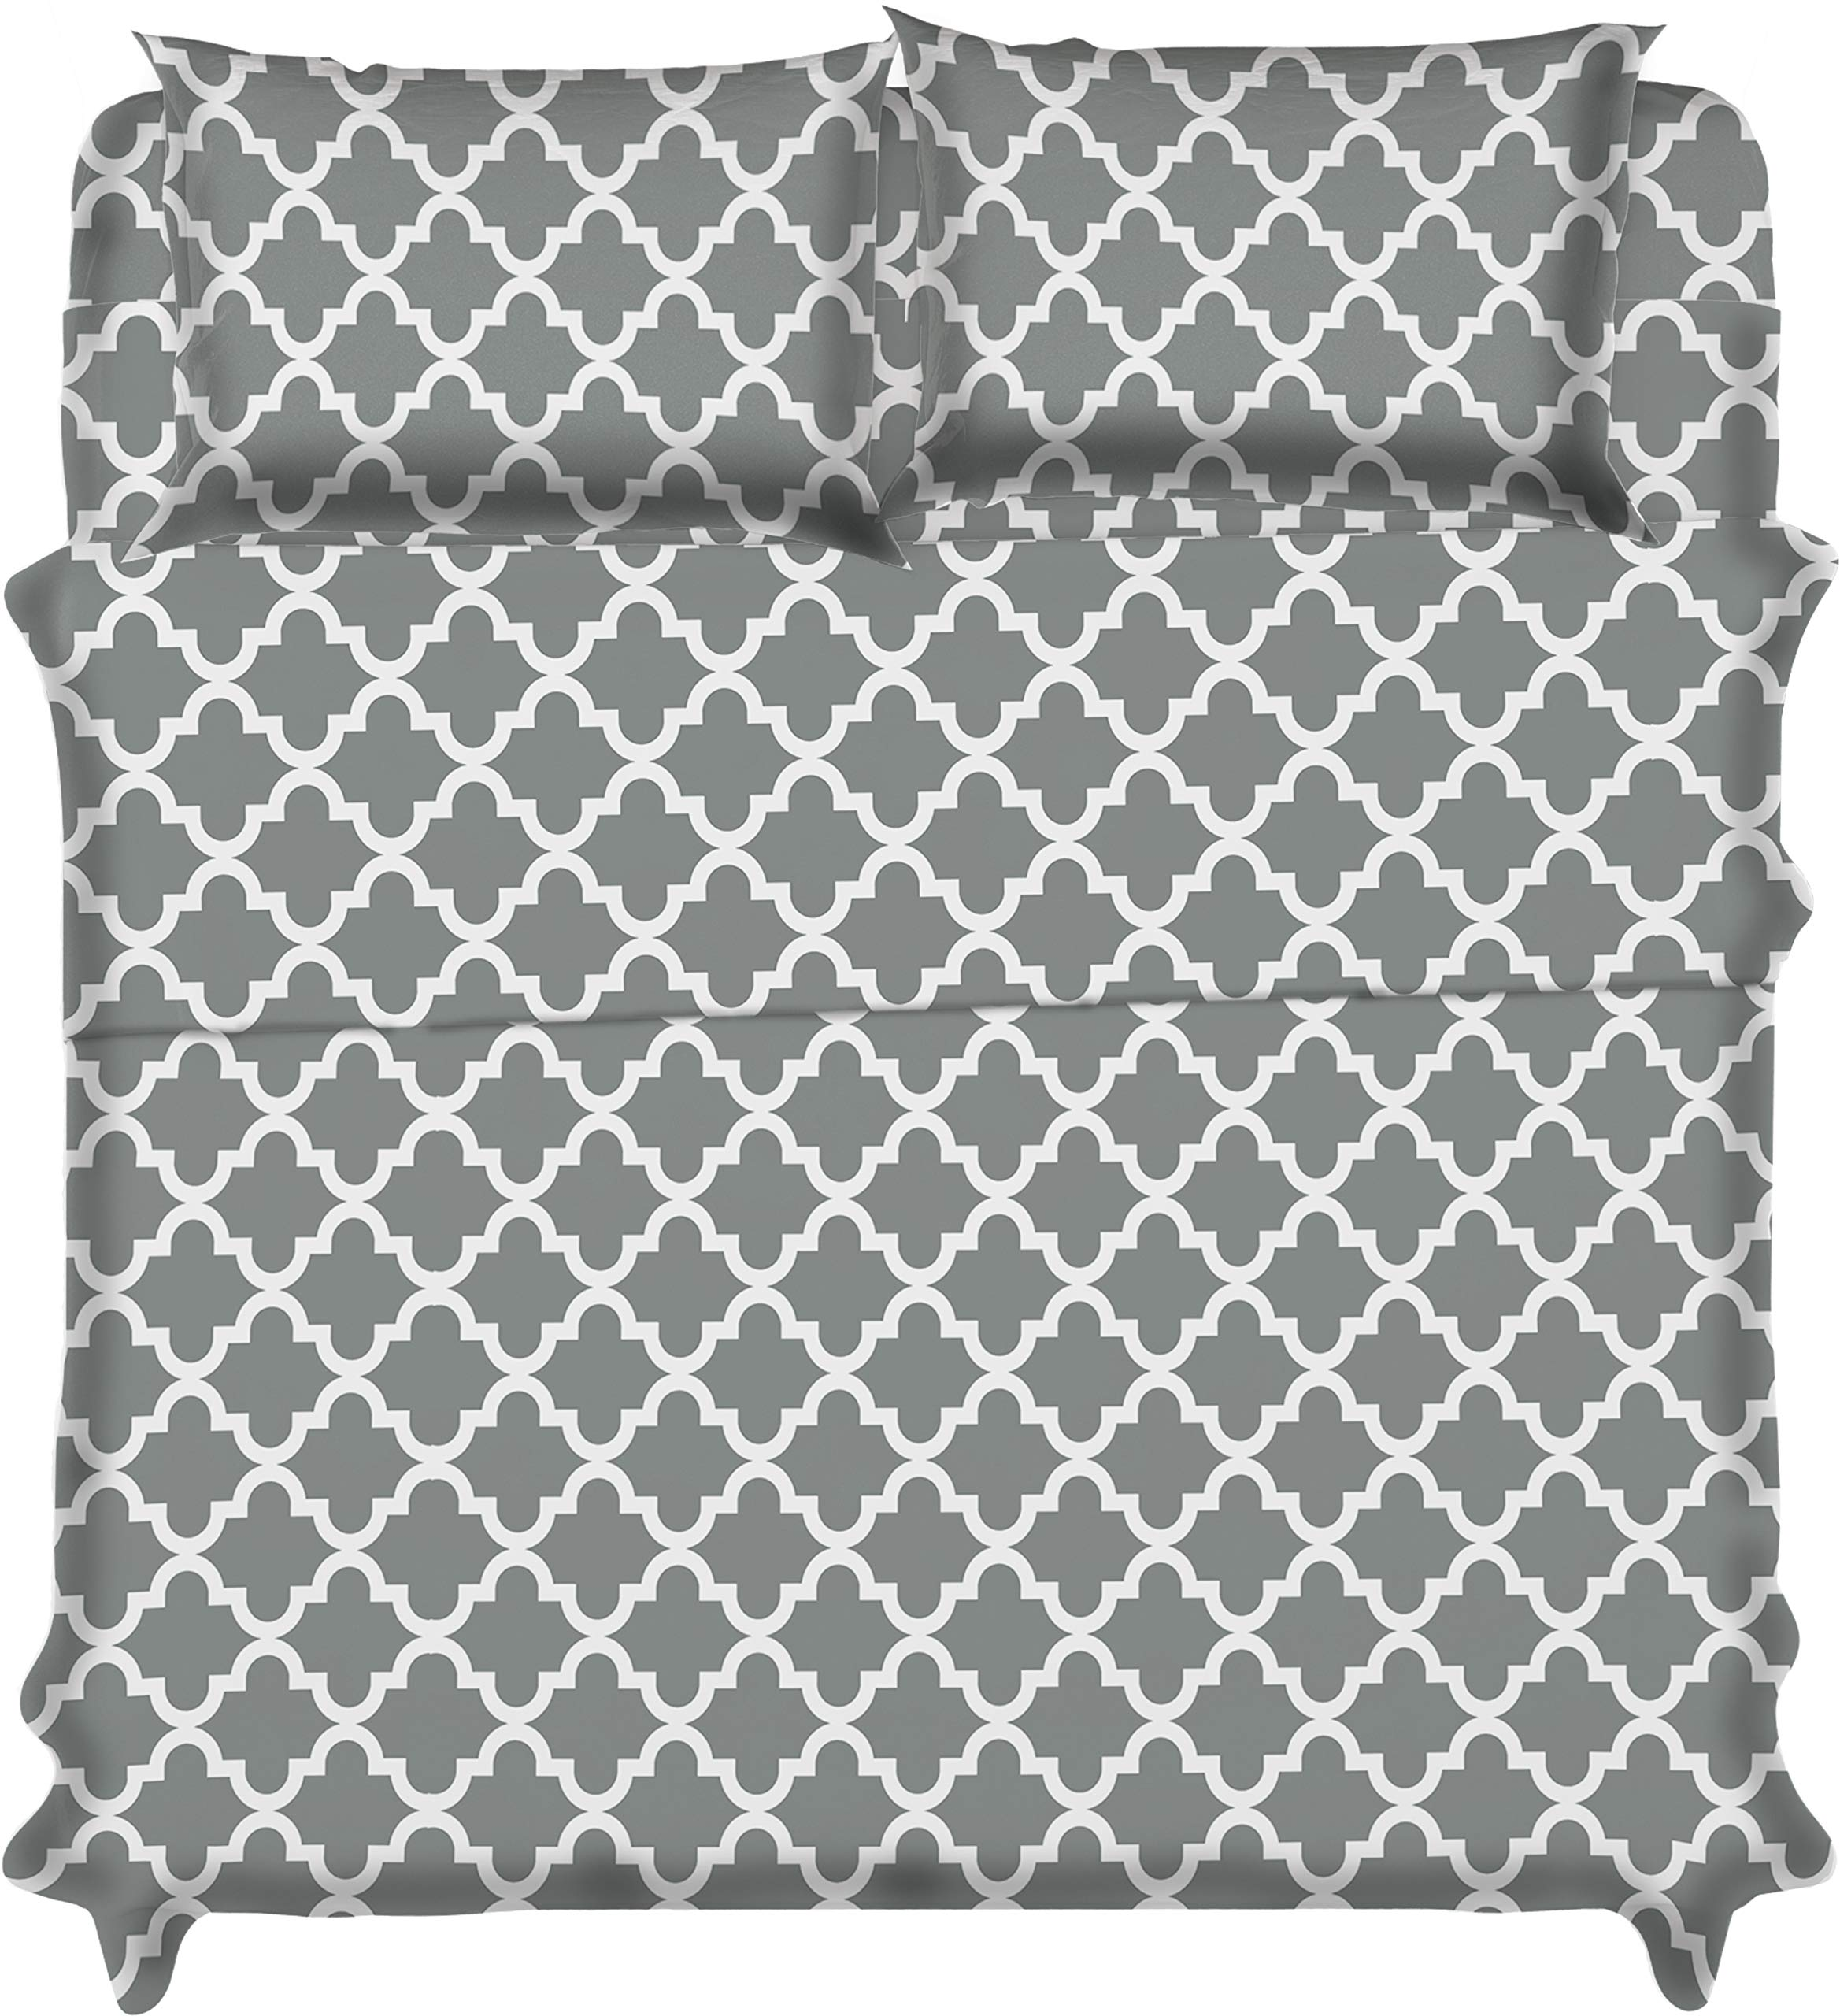 Lux Decor Collection Bed Sheet Set - Brushed Microfiber 1800 Bedding - Wrinkle, Stain and Fade Resistant - Hypoallergenic - 3 Piece (Twin, Quatrefoil Grey)